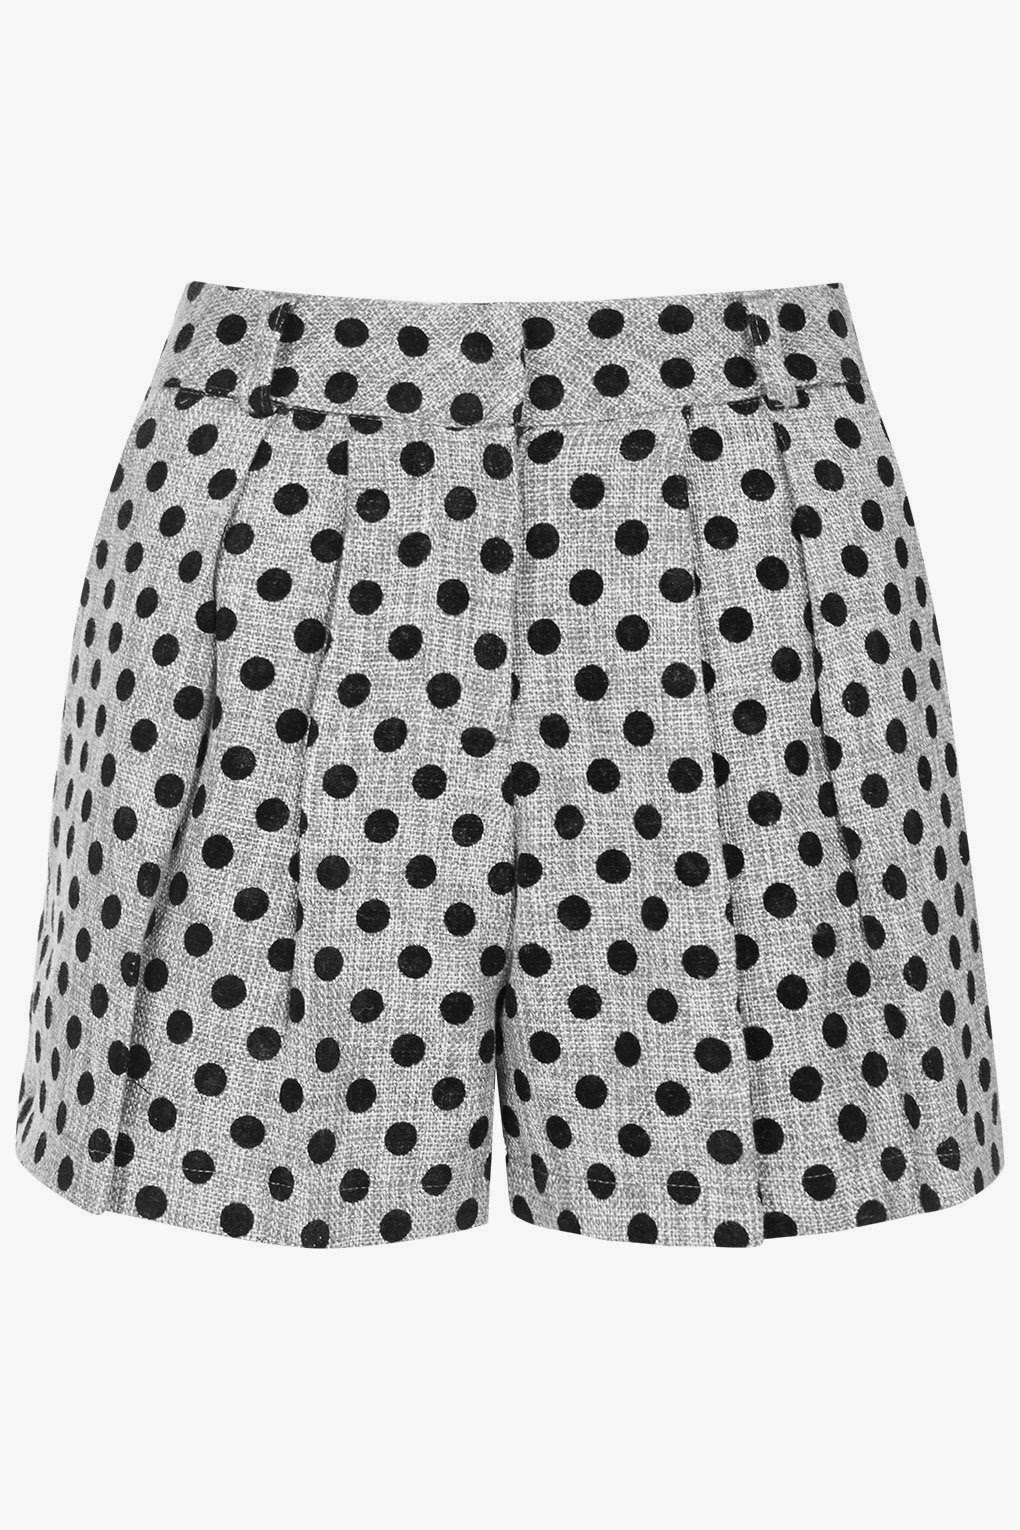 grey spotted shorts, sister jane spotty shorts,